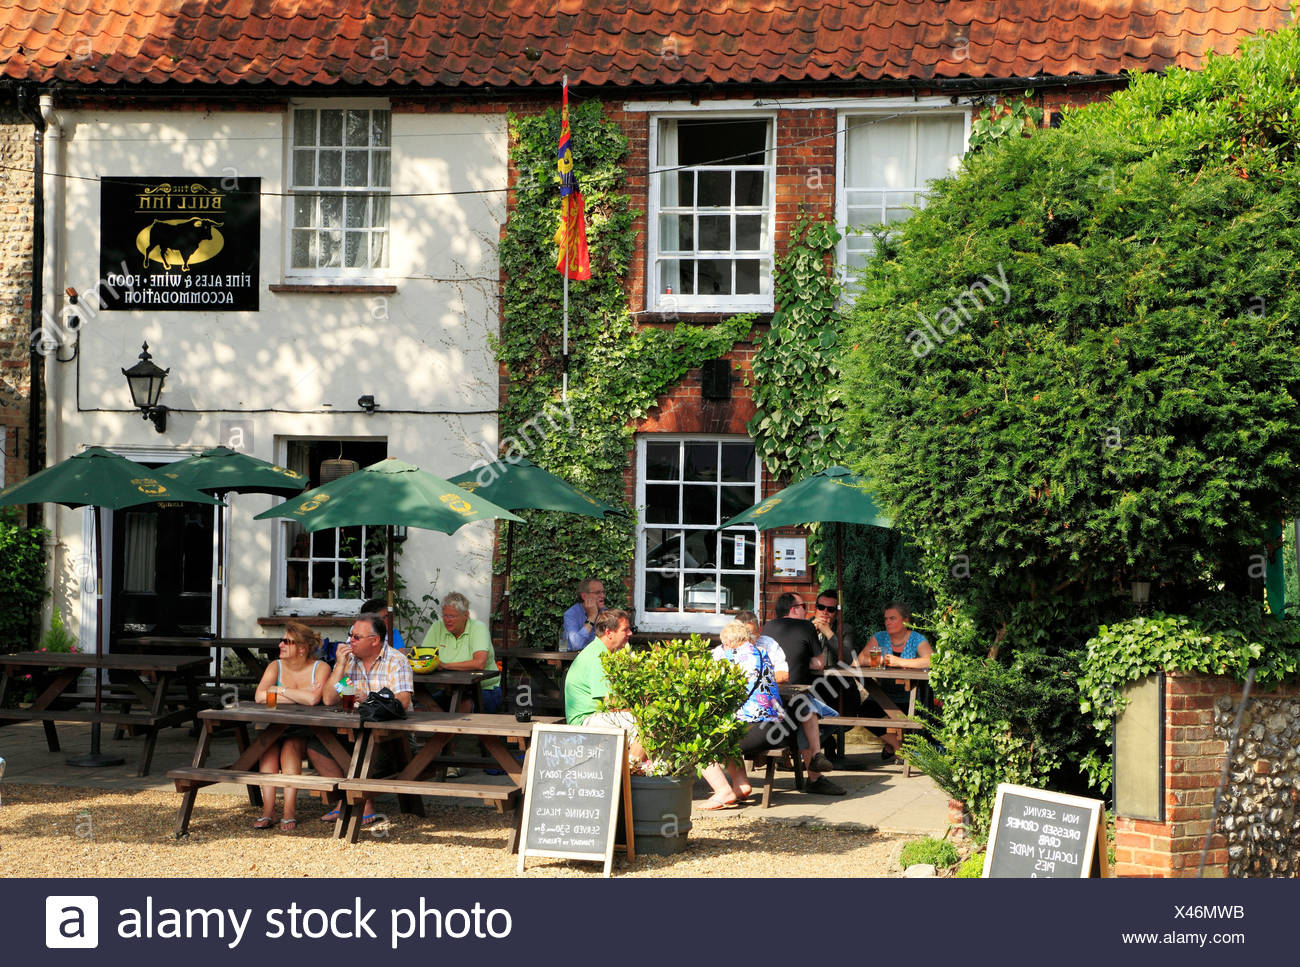 Walsingham, The Bull Inn, garden and pub, people eating drinking, Norfolk, England UK, English pubs inns - Stock Image